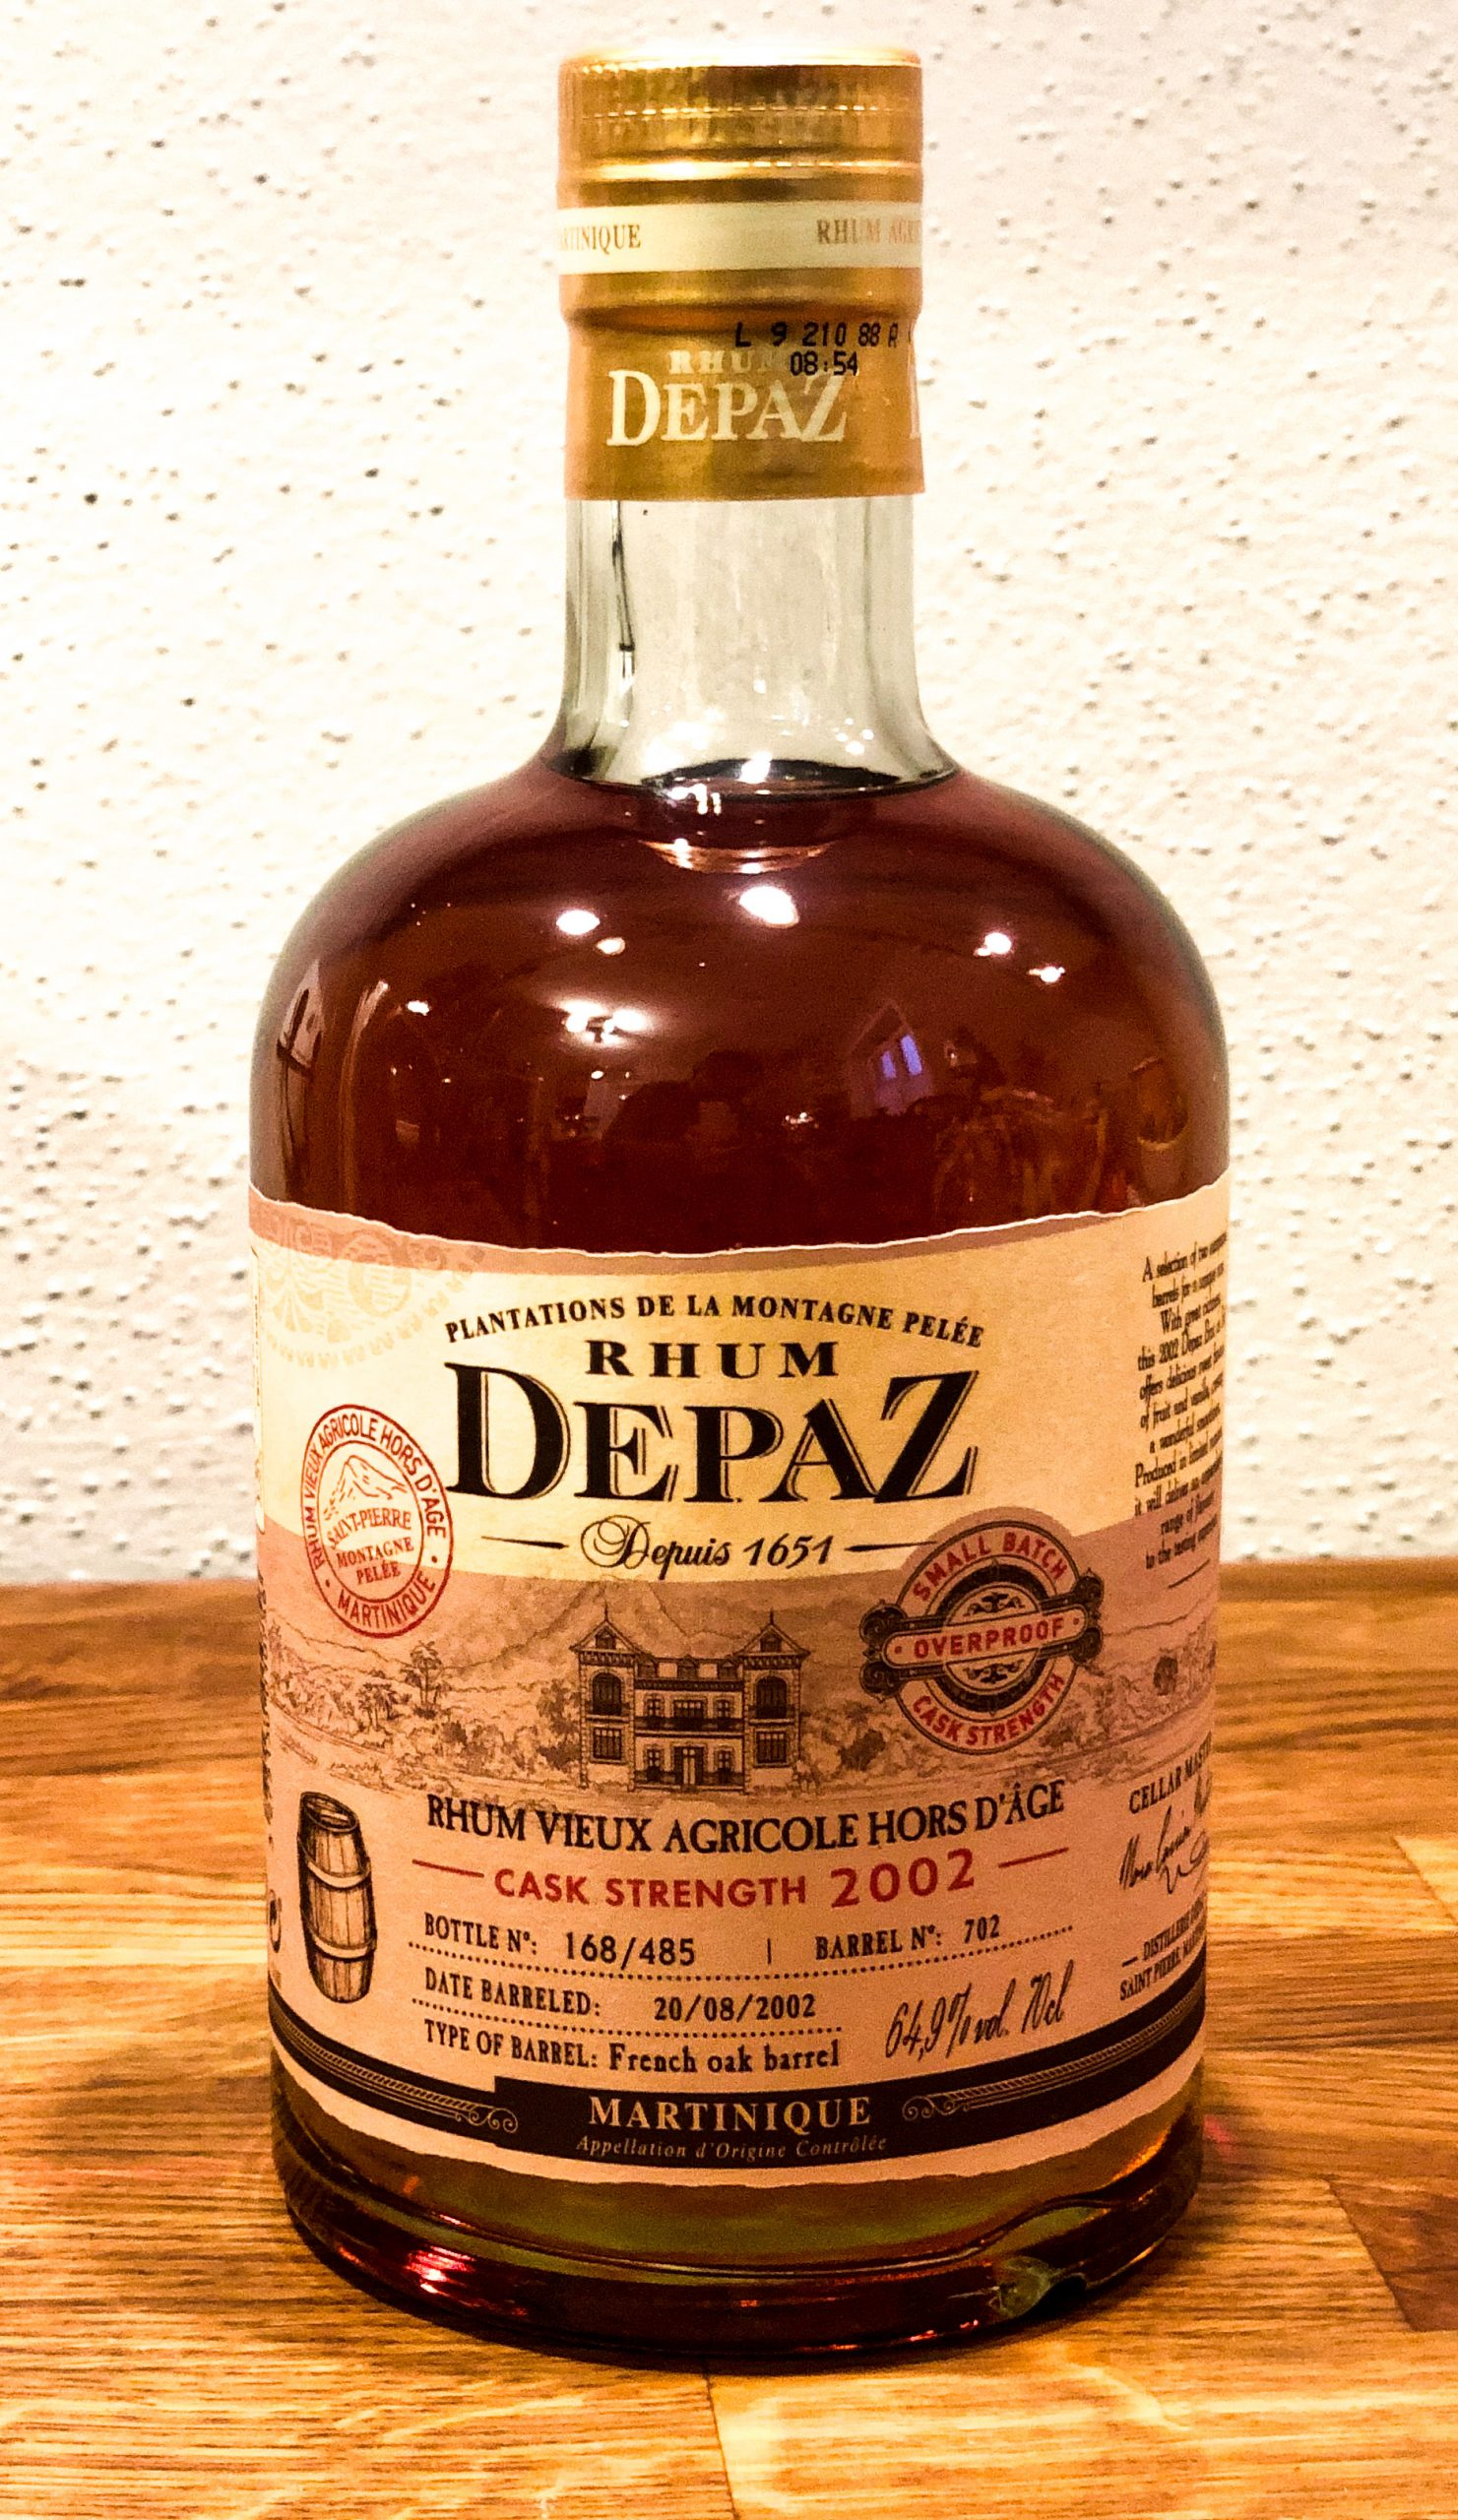 Rhum Depaz Cask Strength 2002